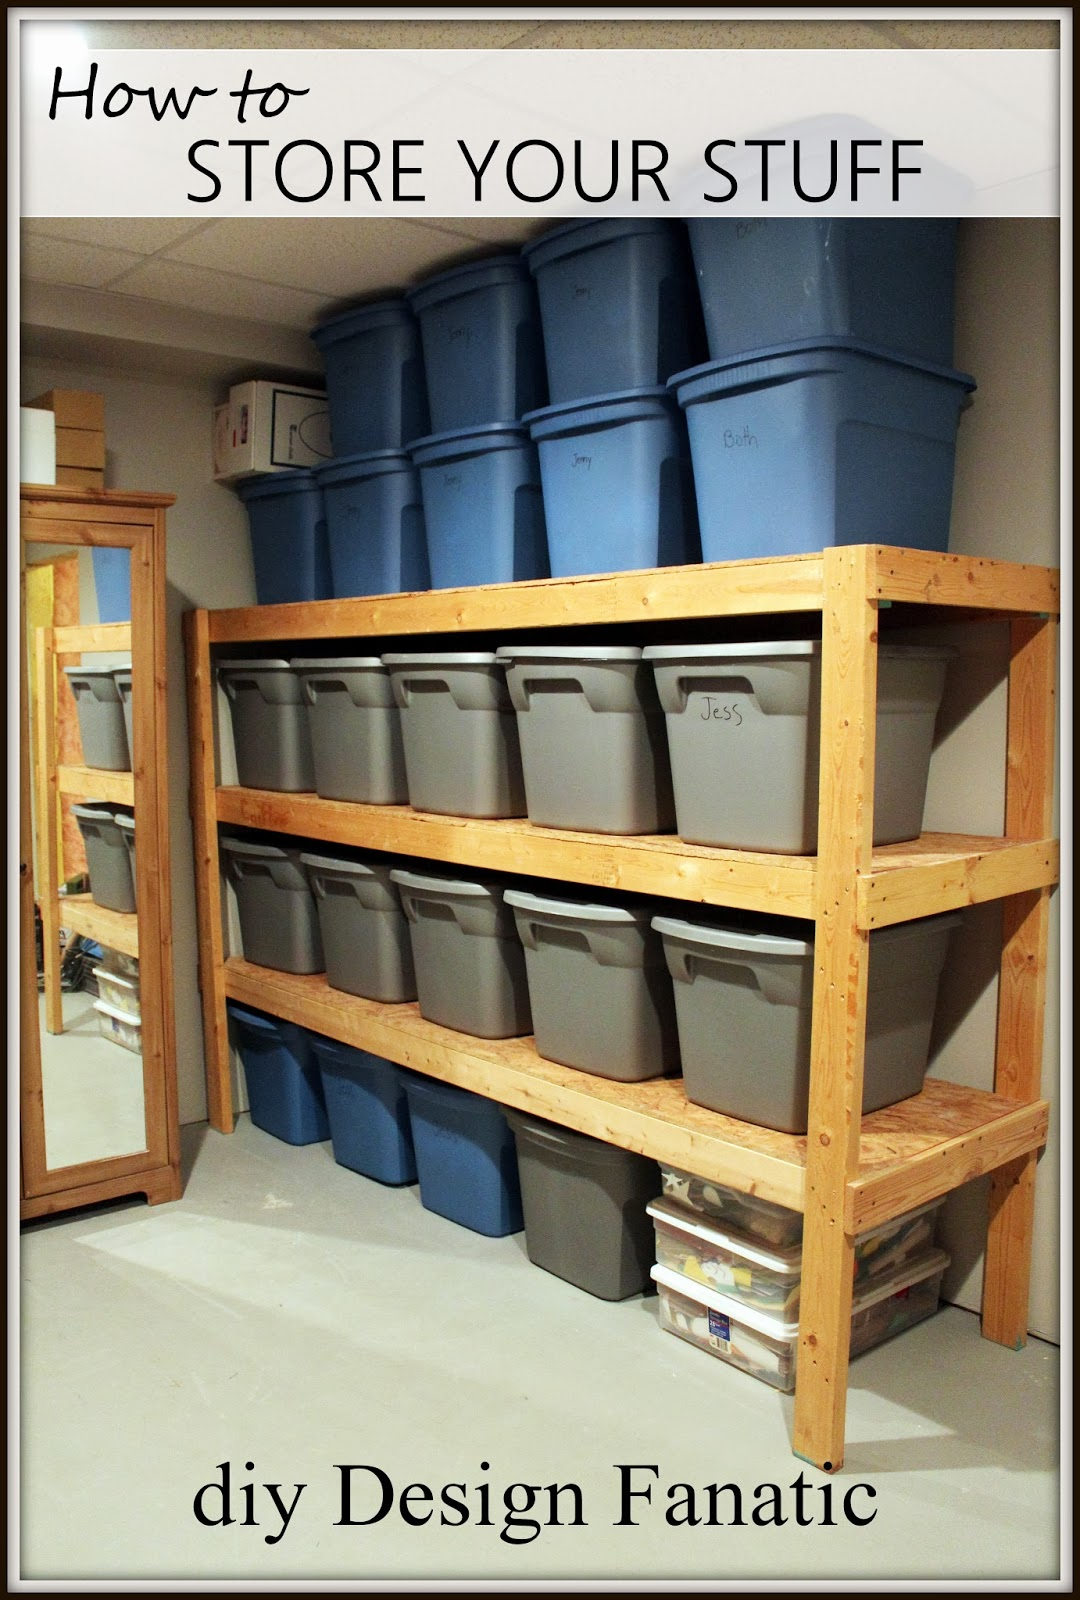 Diy design fanatic diy storage how to store your stuff storage diydesignfanatic storage shelves diy storage shelves basement storage solutioingenieria Images